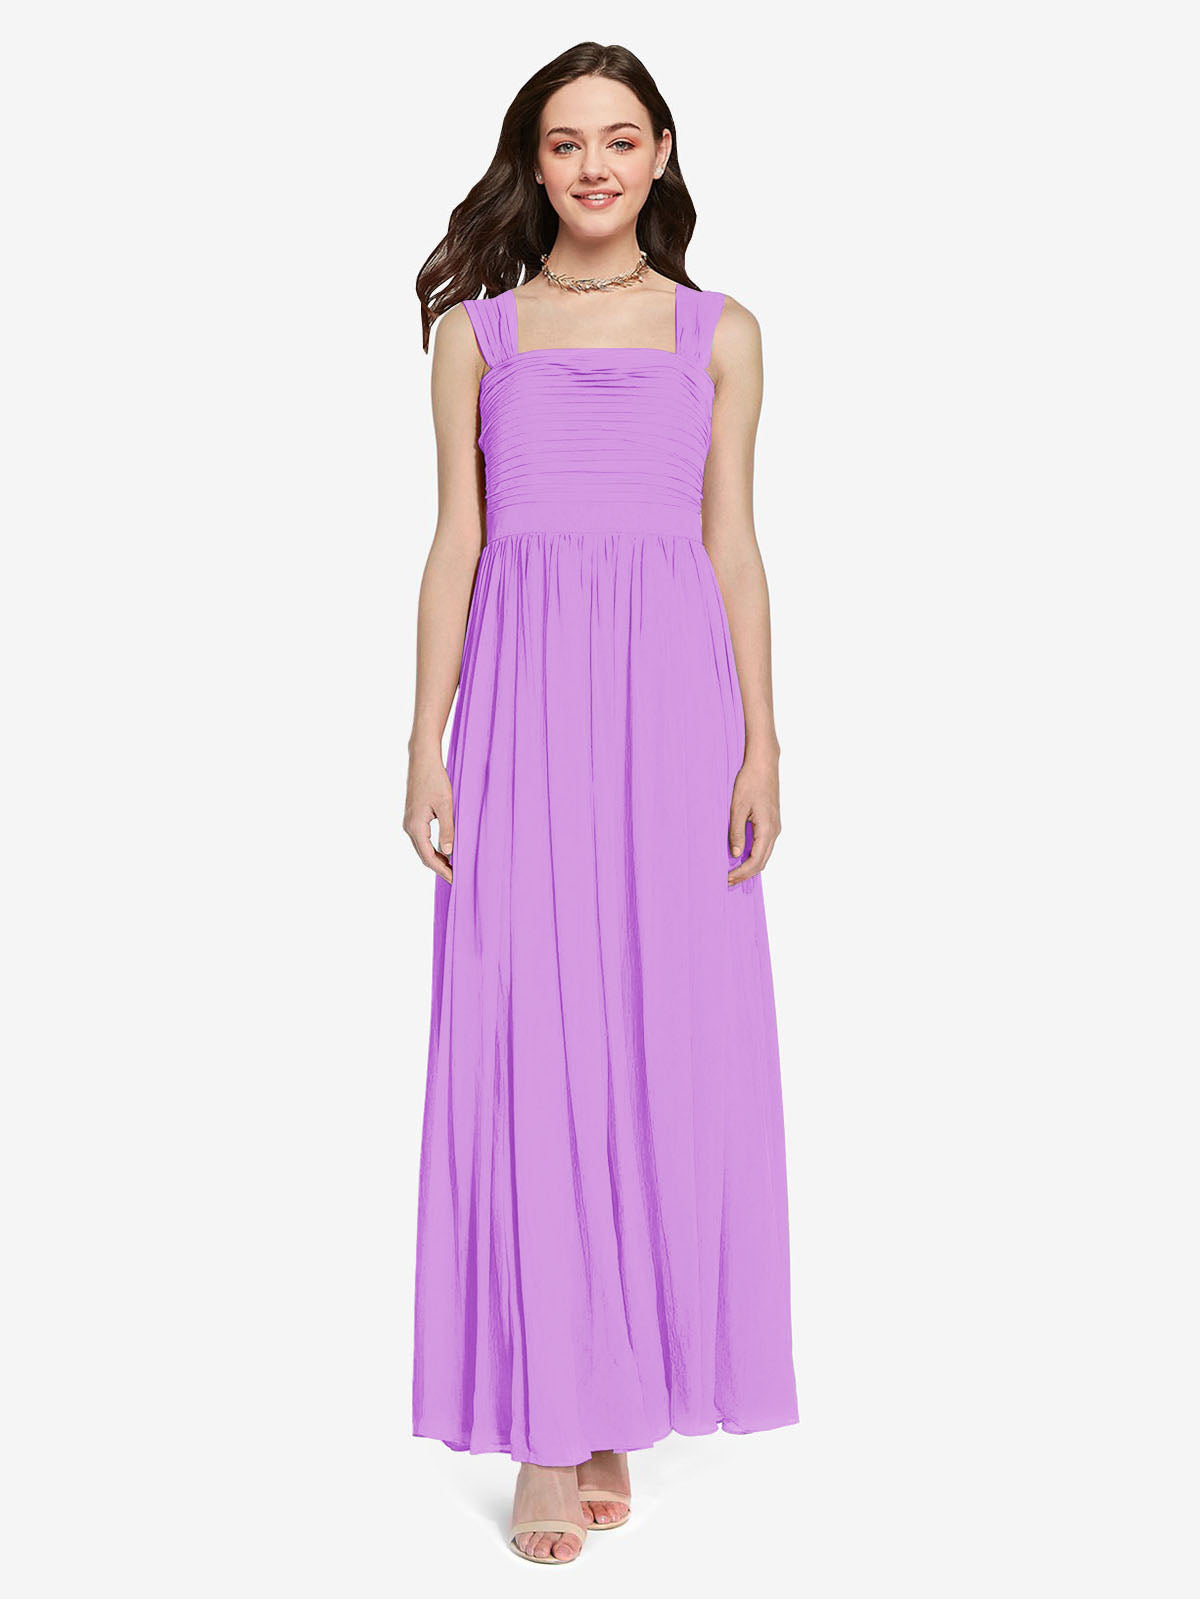 Long A-Line Square Sleeveless Violet Chiffon Bridesmaid Dress Aldridge